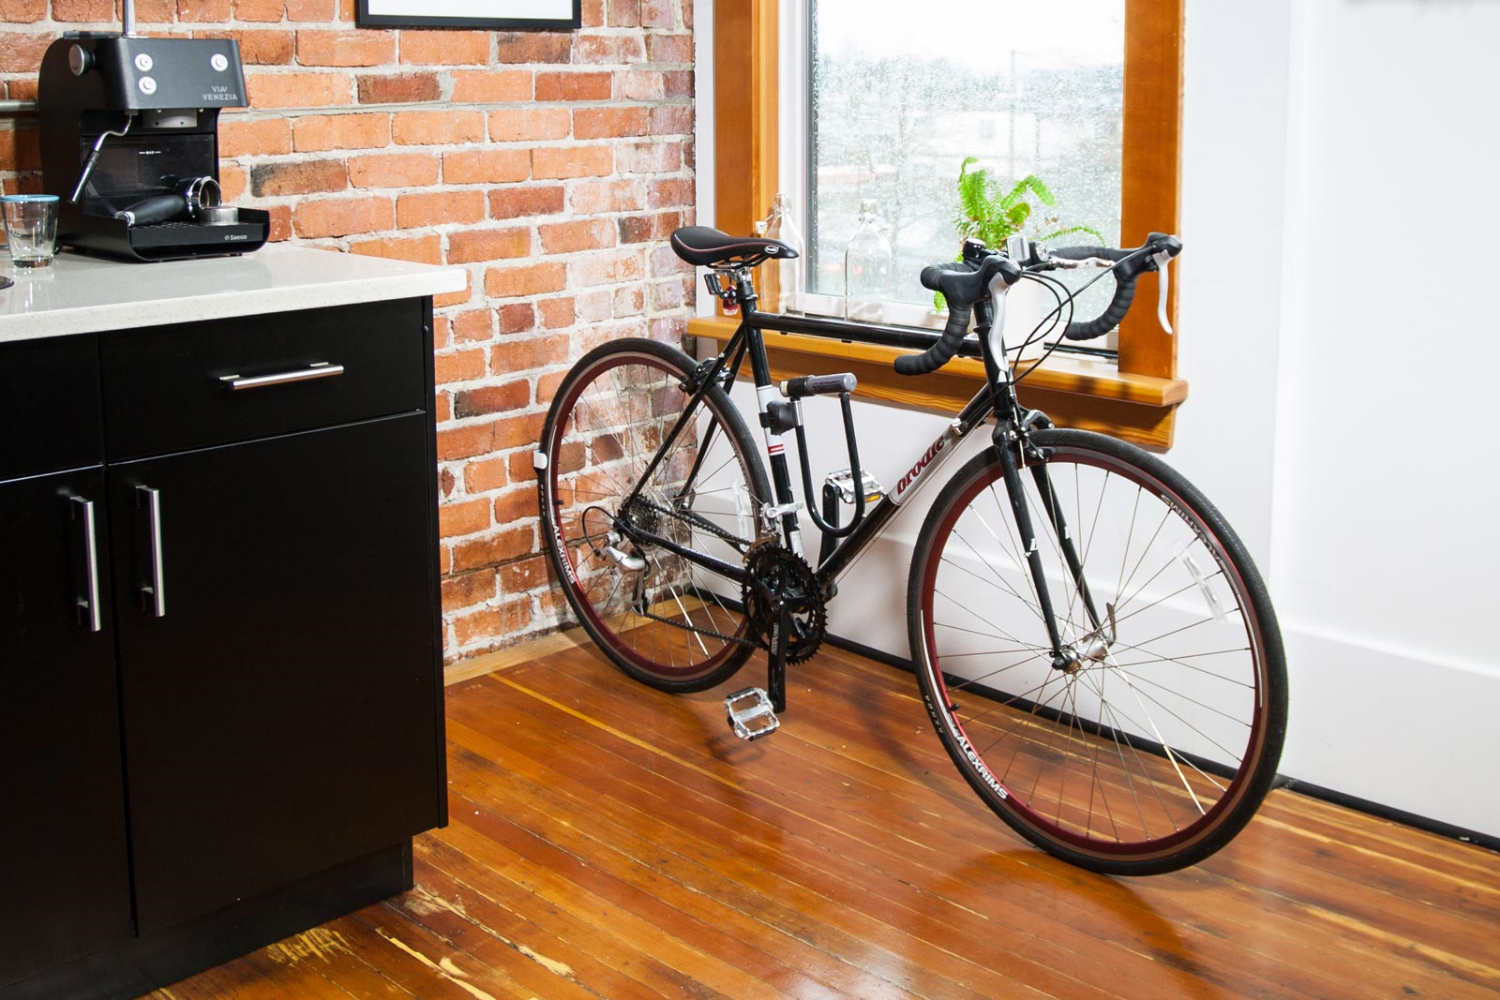 & CLUG: The Perfect Bike Storage Rack For Your Tiny Apartment